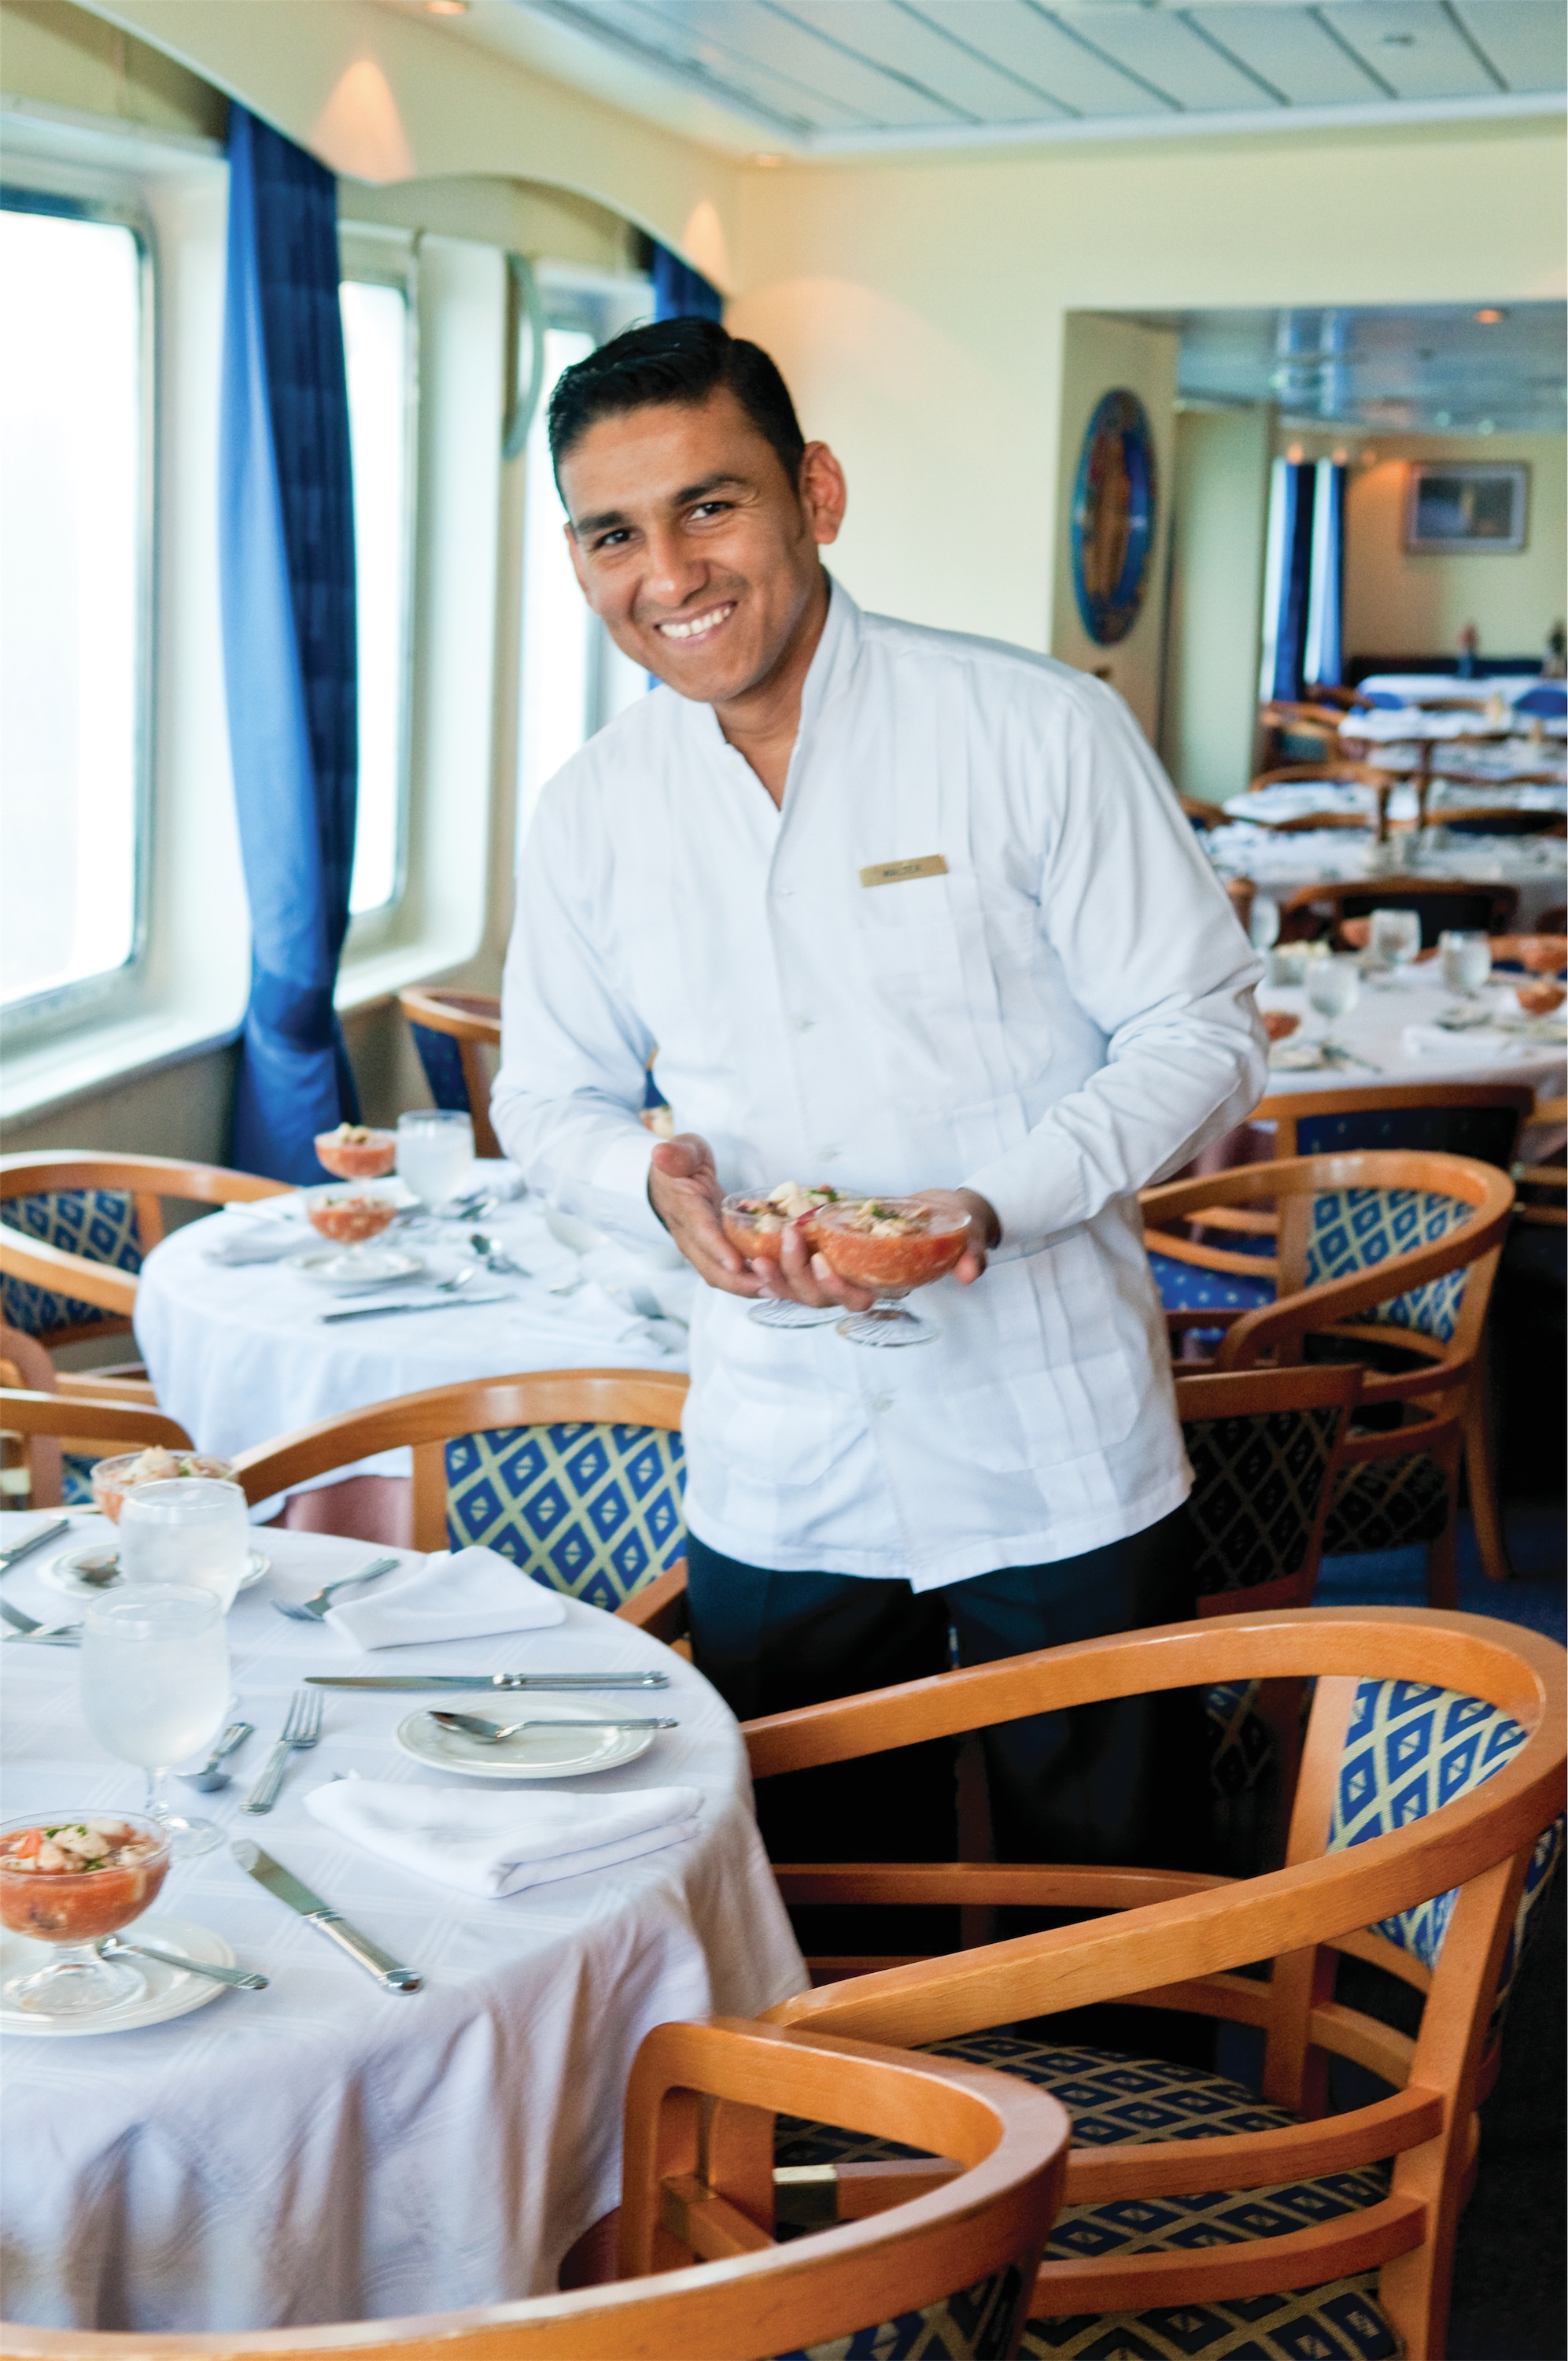 Lindblad Expeditions National Geographic Endeavour Interior Dining 2.jpg